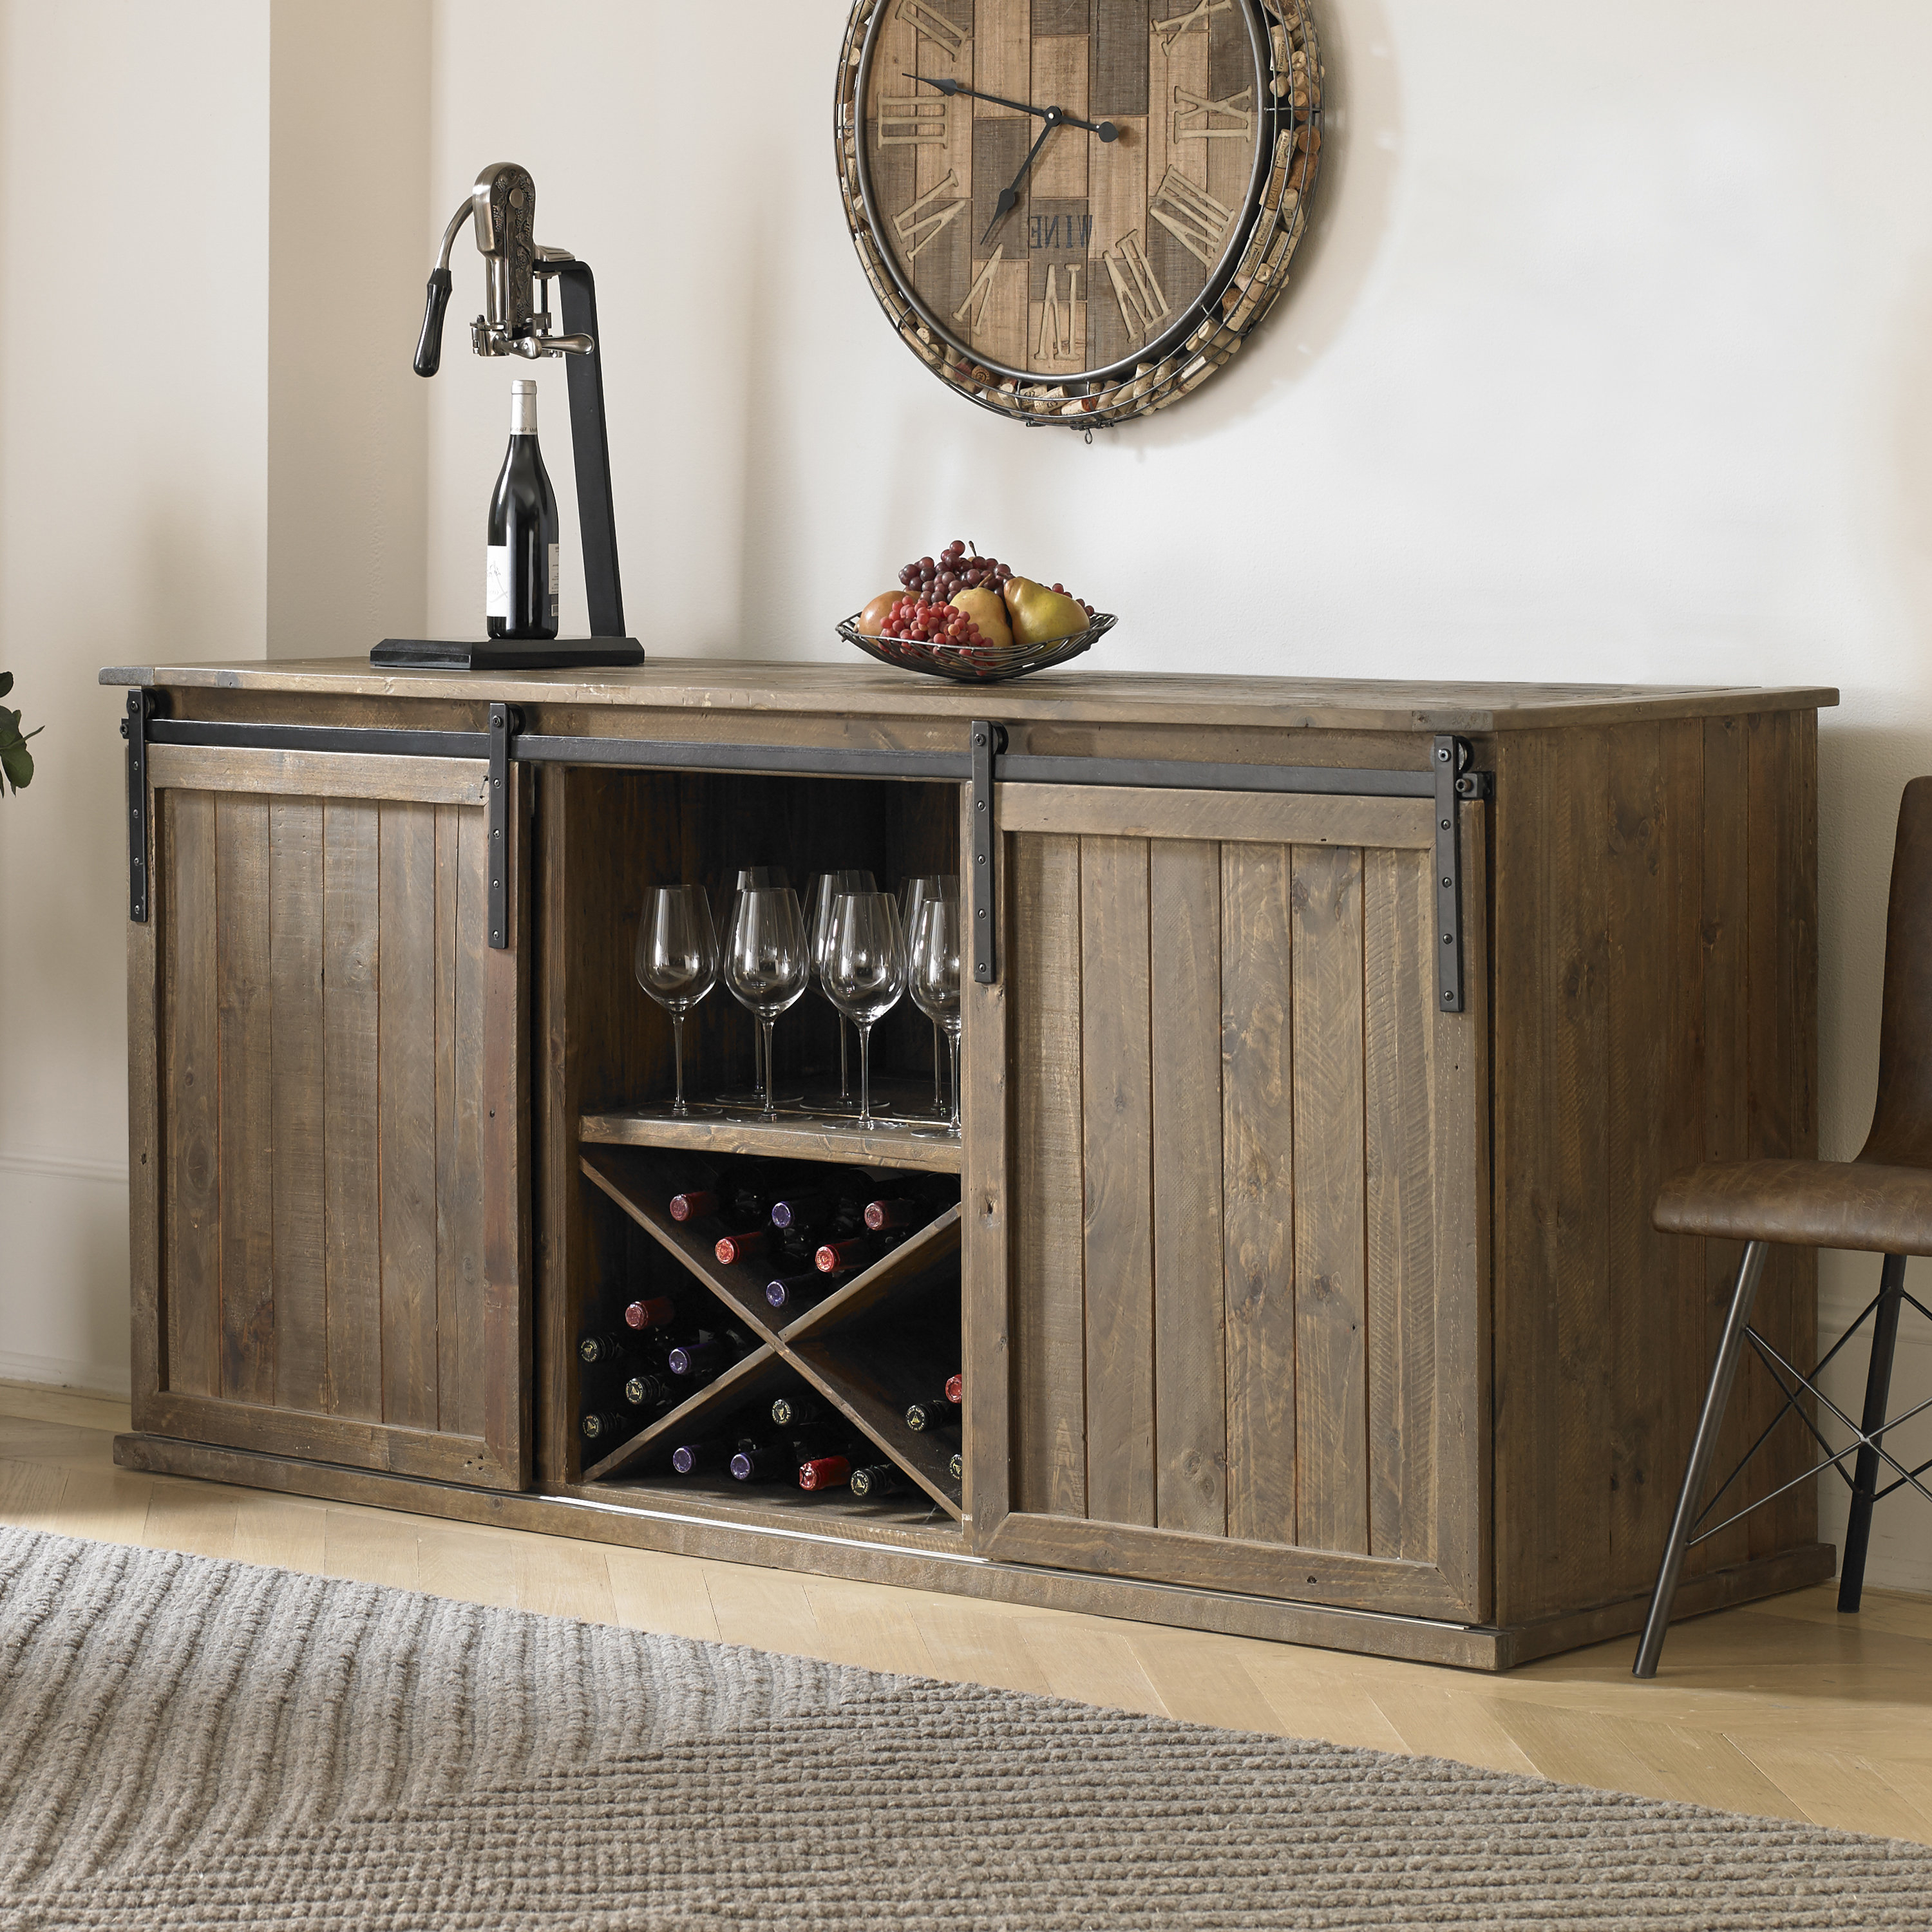 Small Credenza With Doors | Wayfair For Candace Door Credenzas (View 19 of 20)